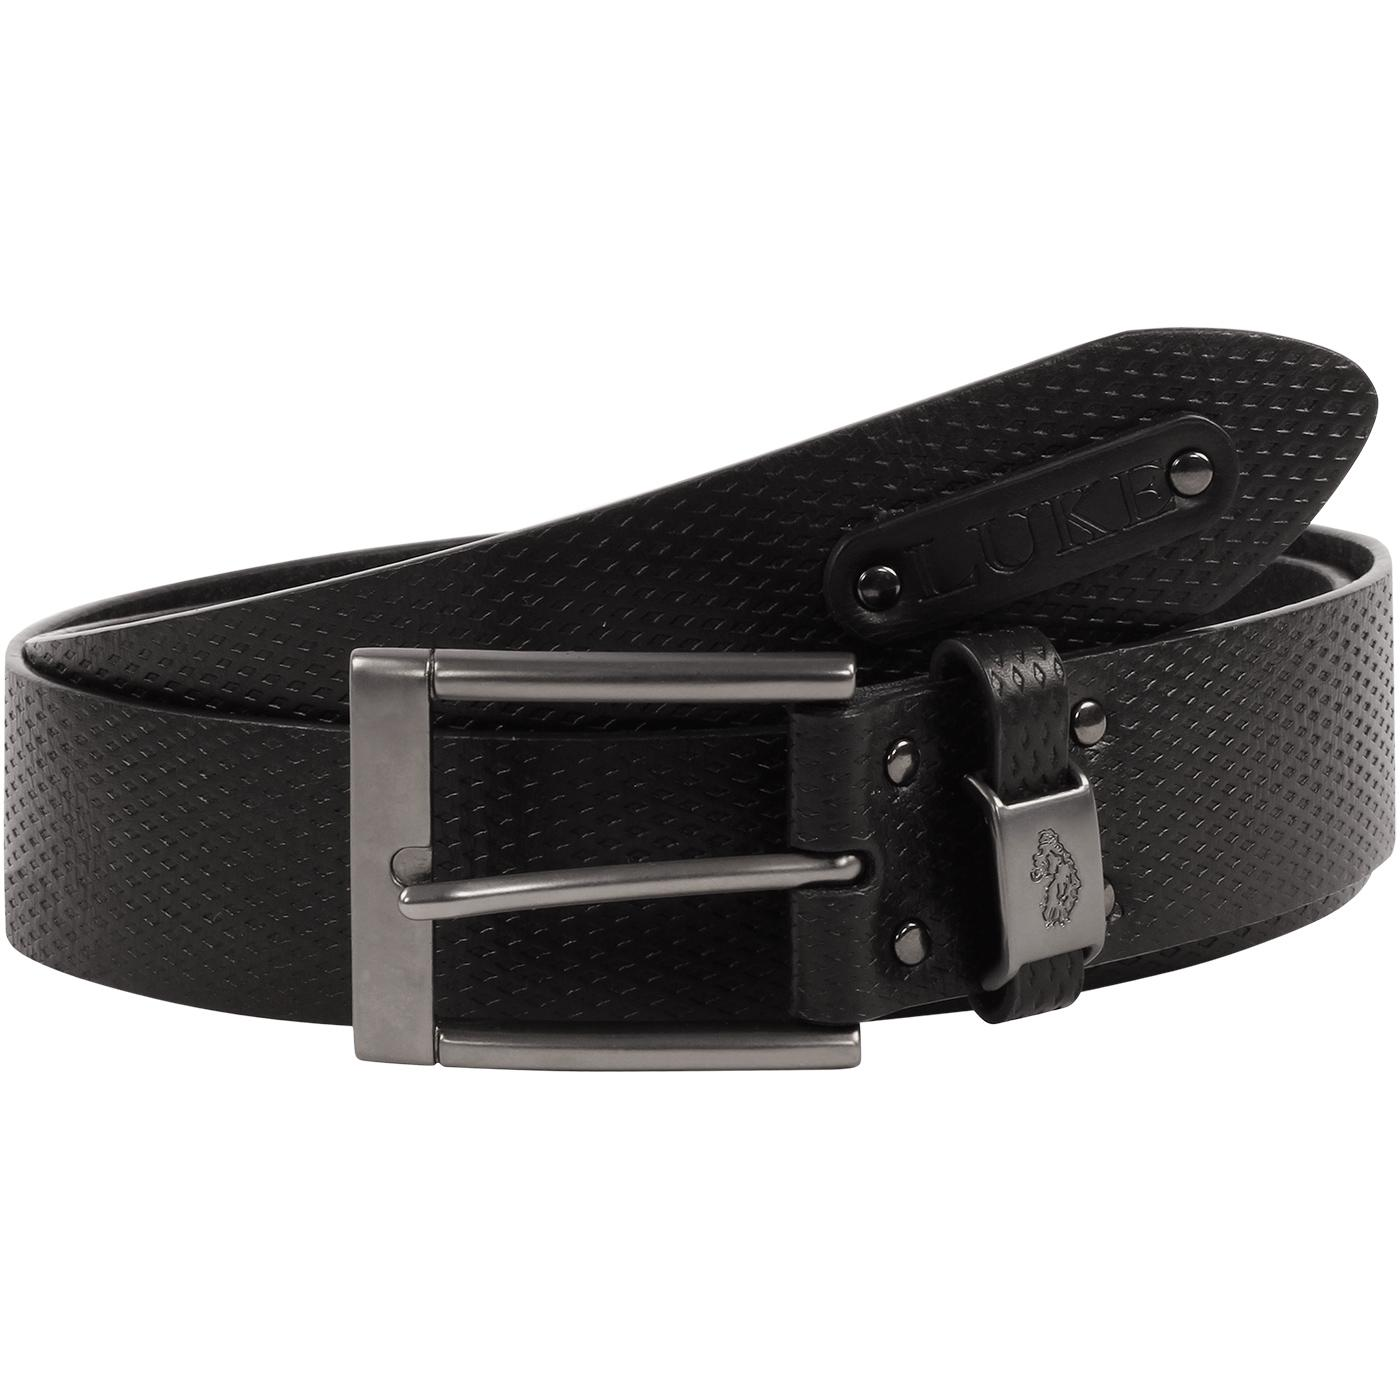 Blair LUKE 1977 Retro Leather Texture Belt - Black